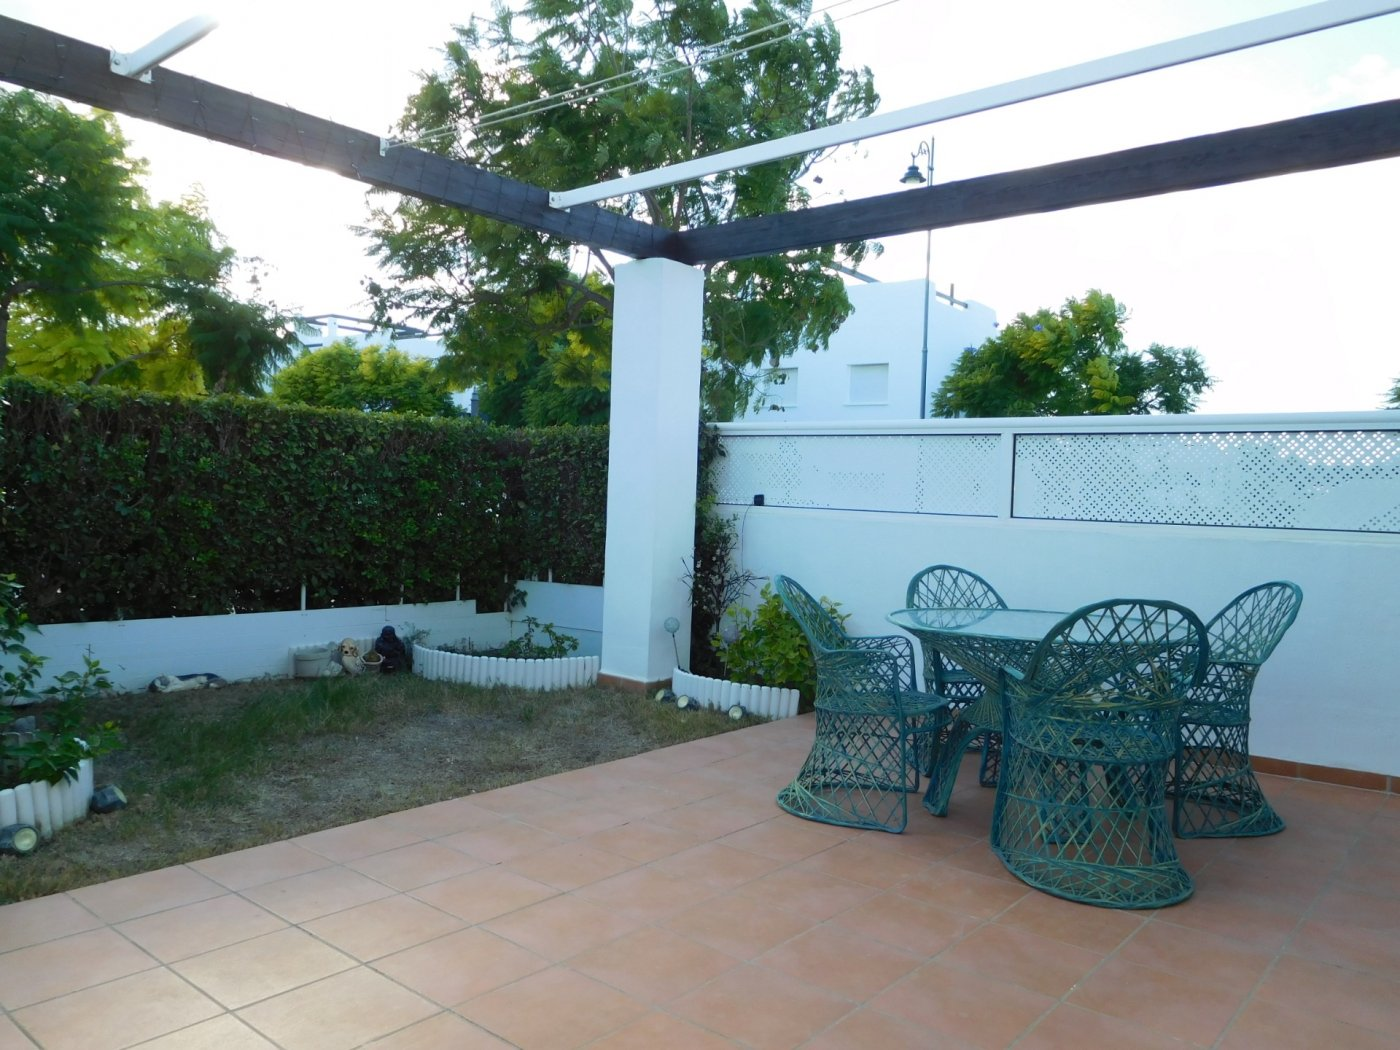 Gallery Image 15 of Flat For rent in Condado De Alhama, Alhama De Murcia With Pool